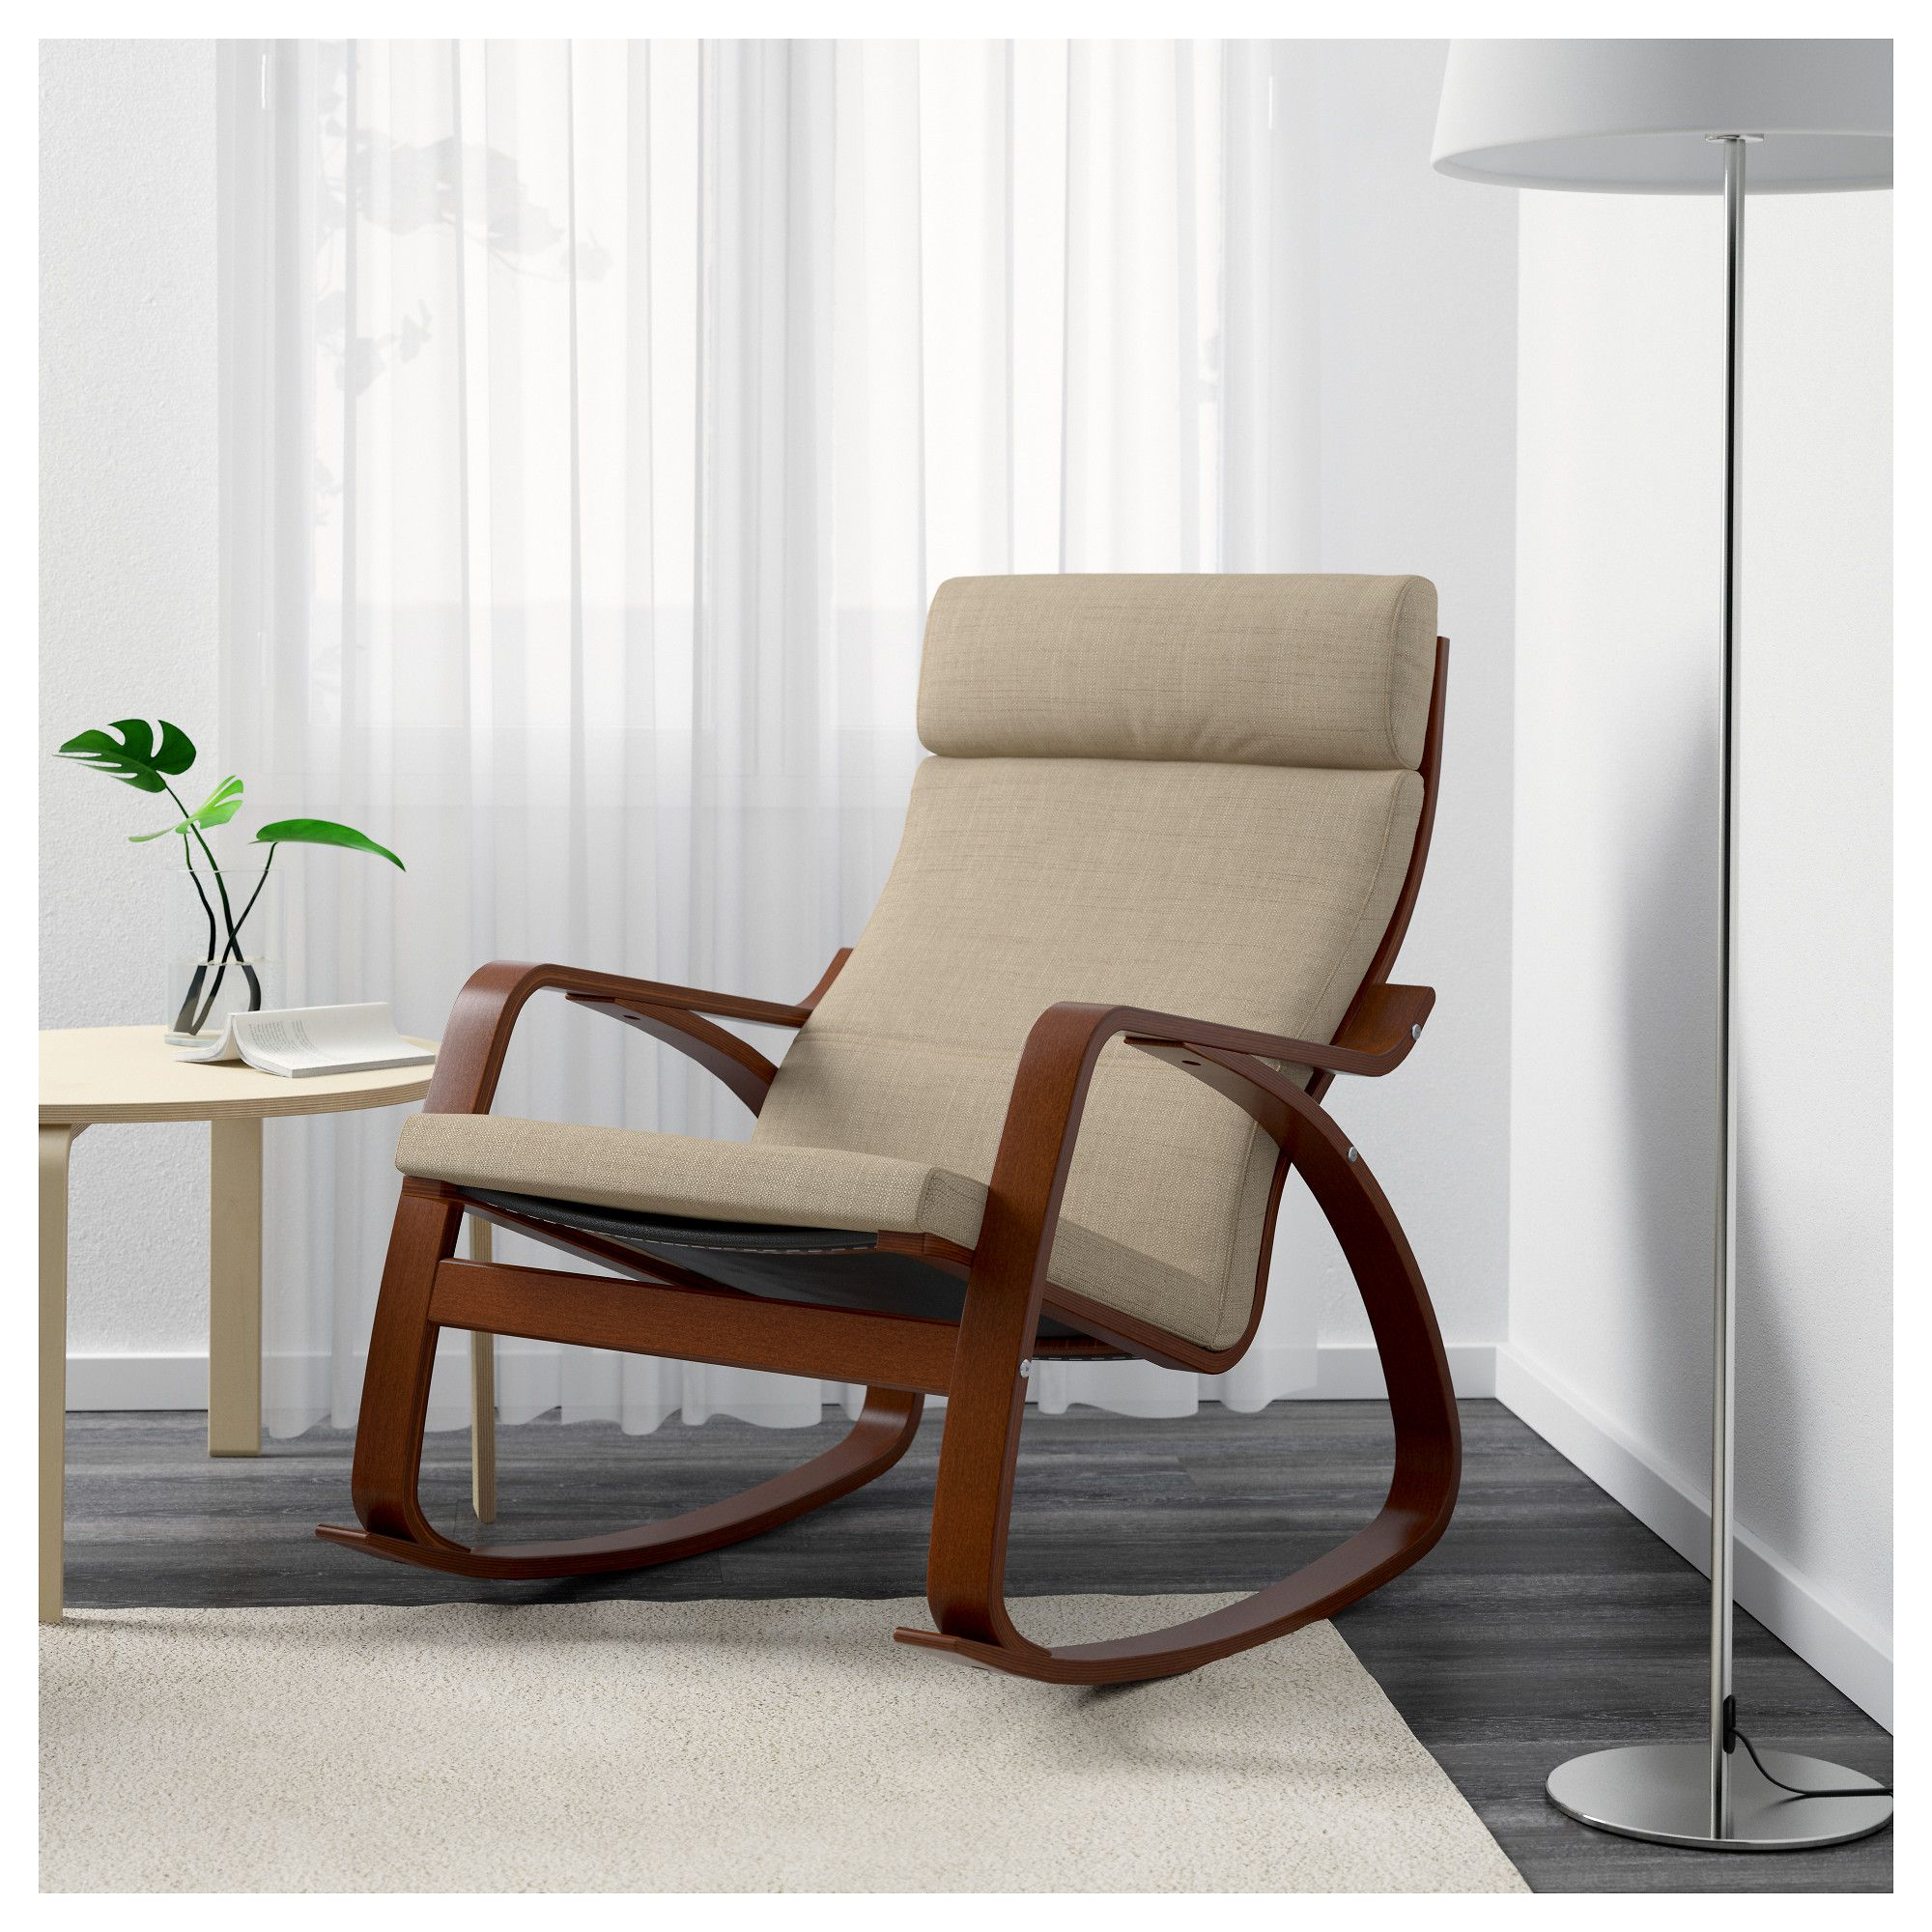 Furniture and Home Furnishings   Rocking chair, Leather